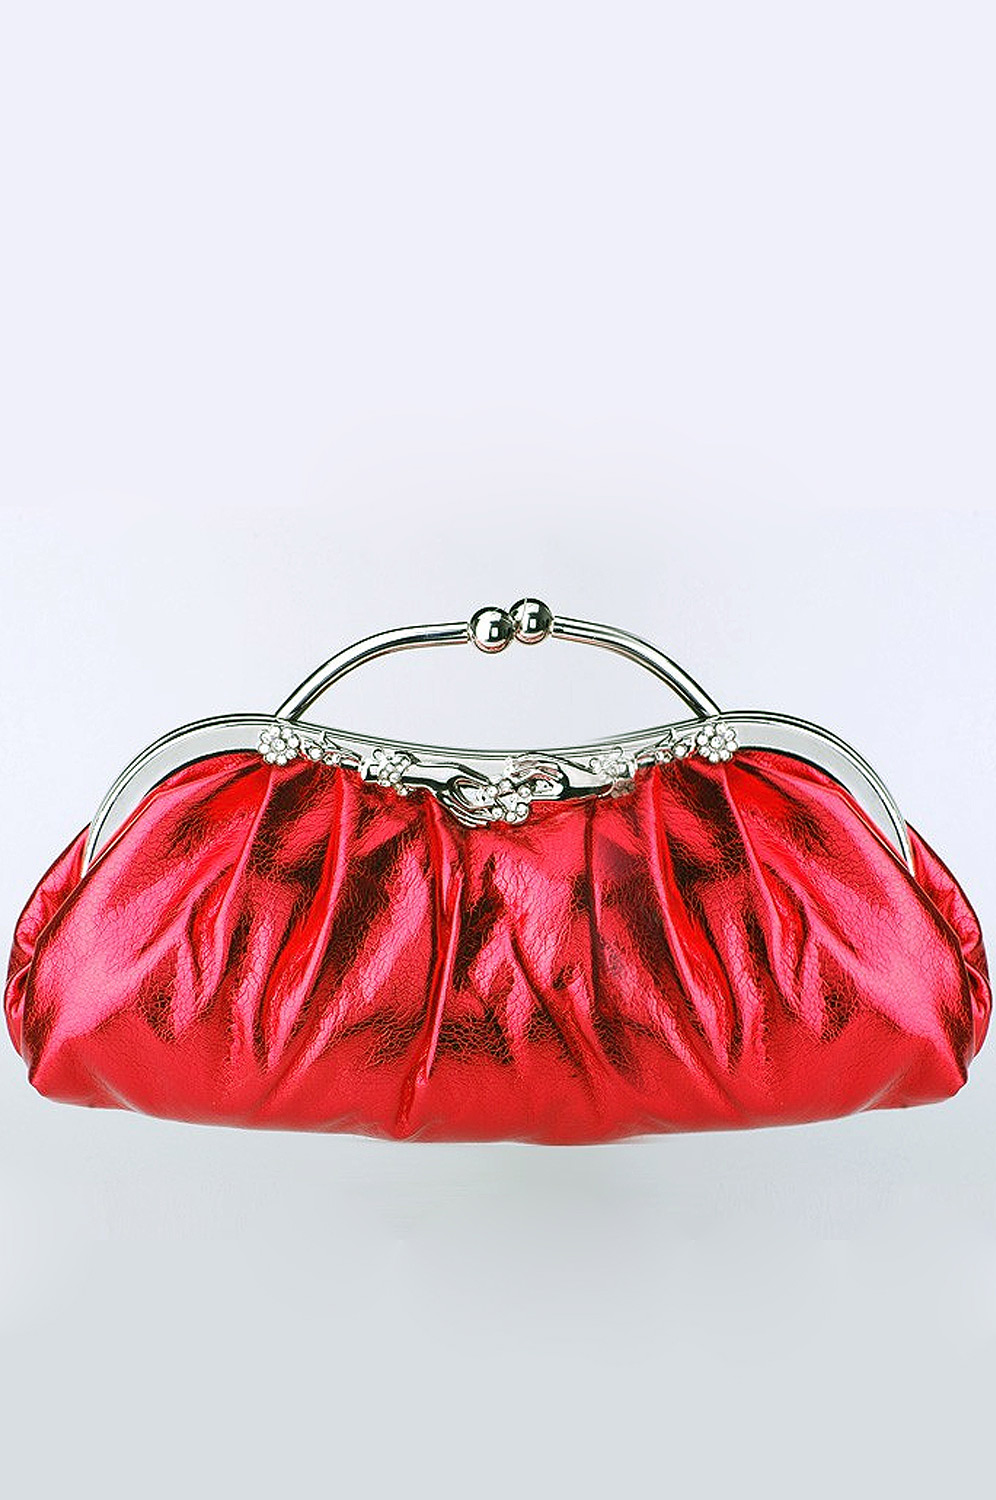 eDressit Lady Bag Handbag Shouler/Clutch BAG (08100402)